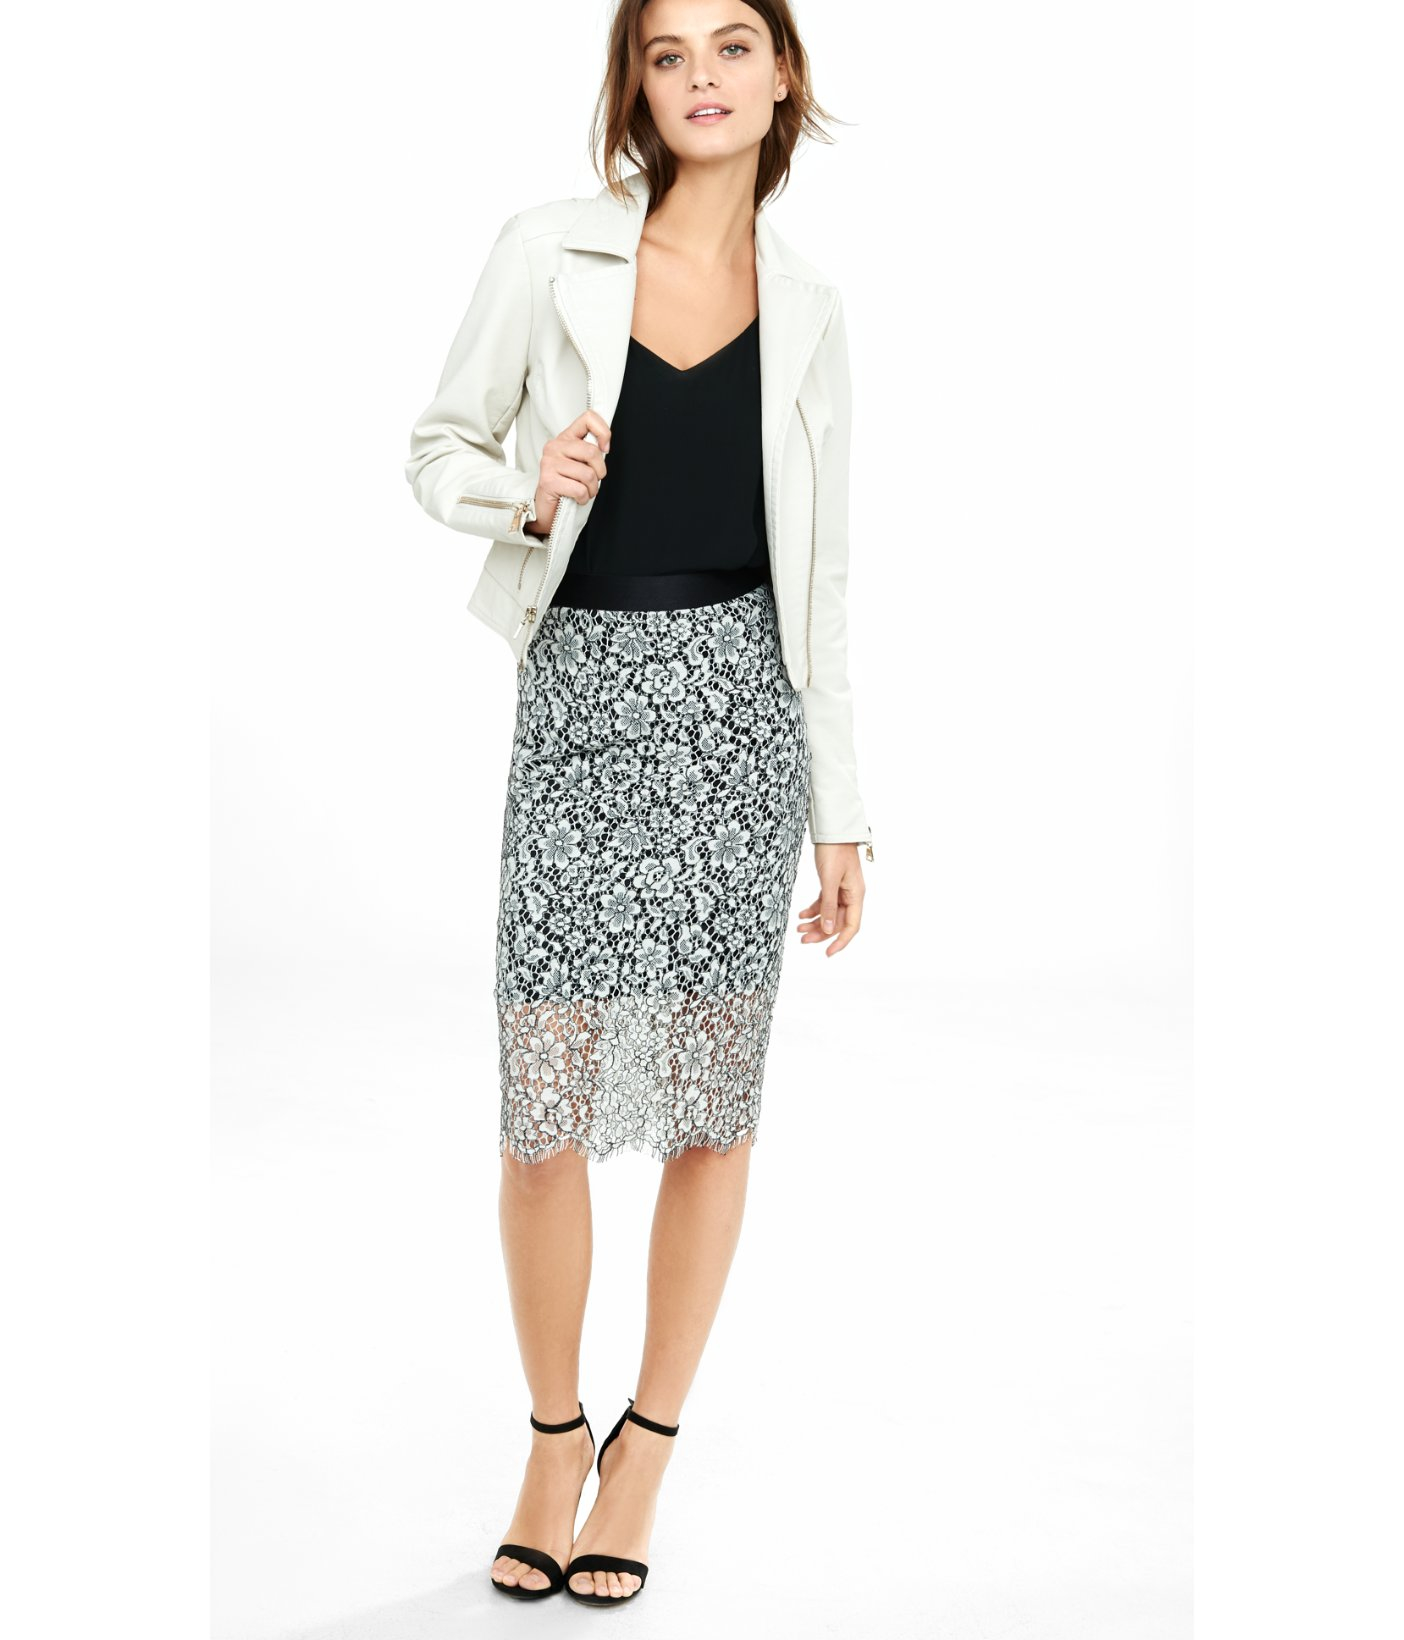 River Island Lace Pencil Skirt